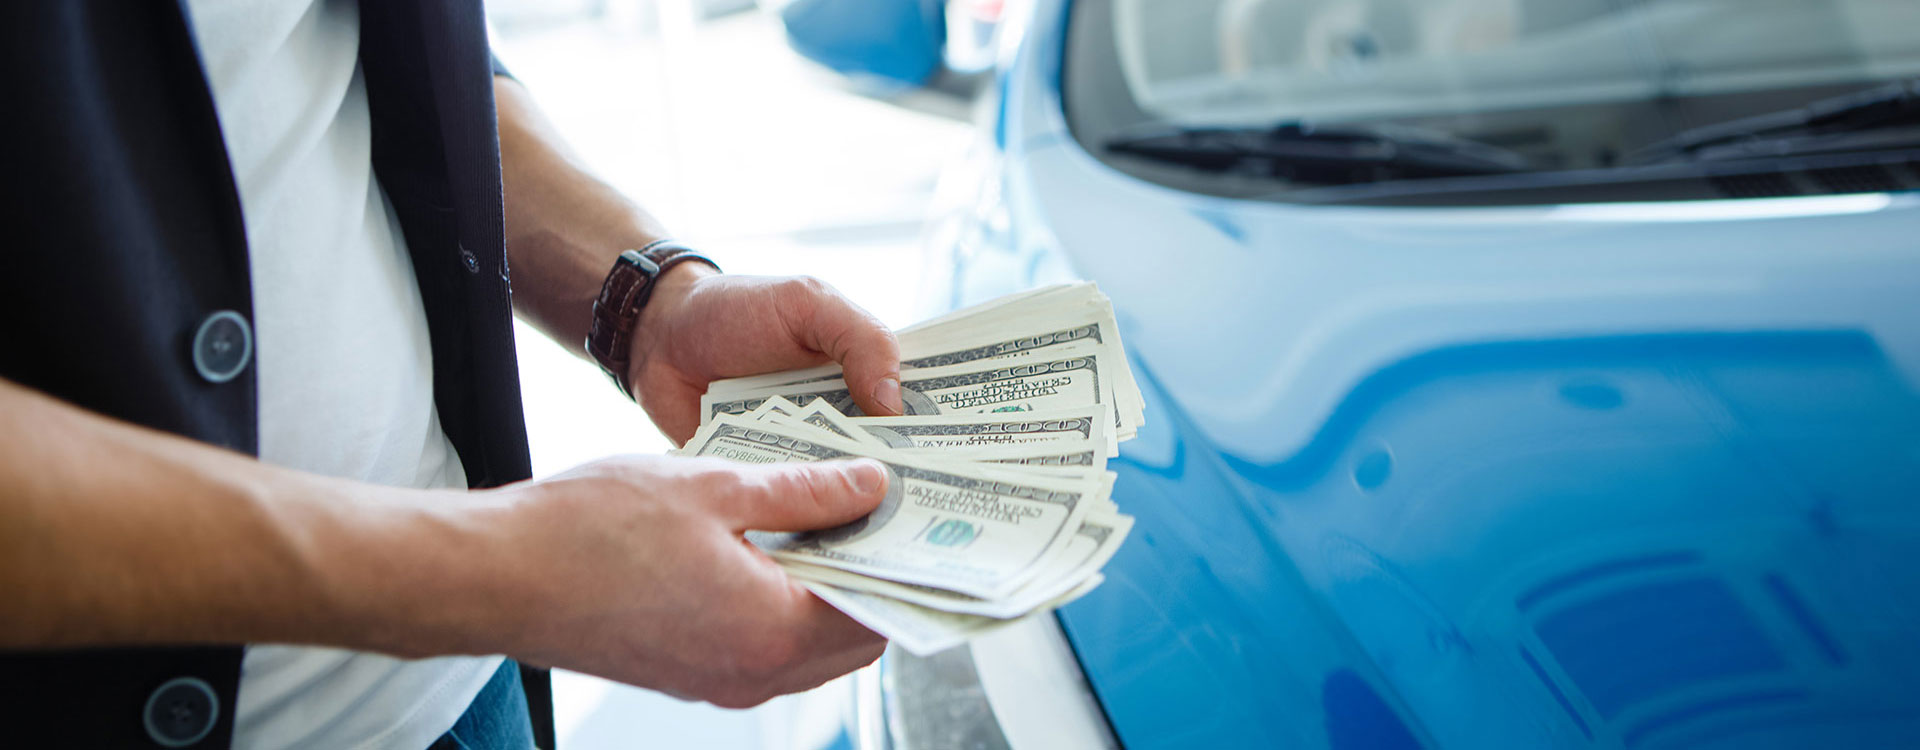 cash-for-junk-cars – CASH FOR CARS | WE BUY CARS | RCOCASH4CARS.COM